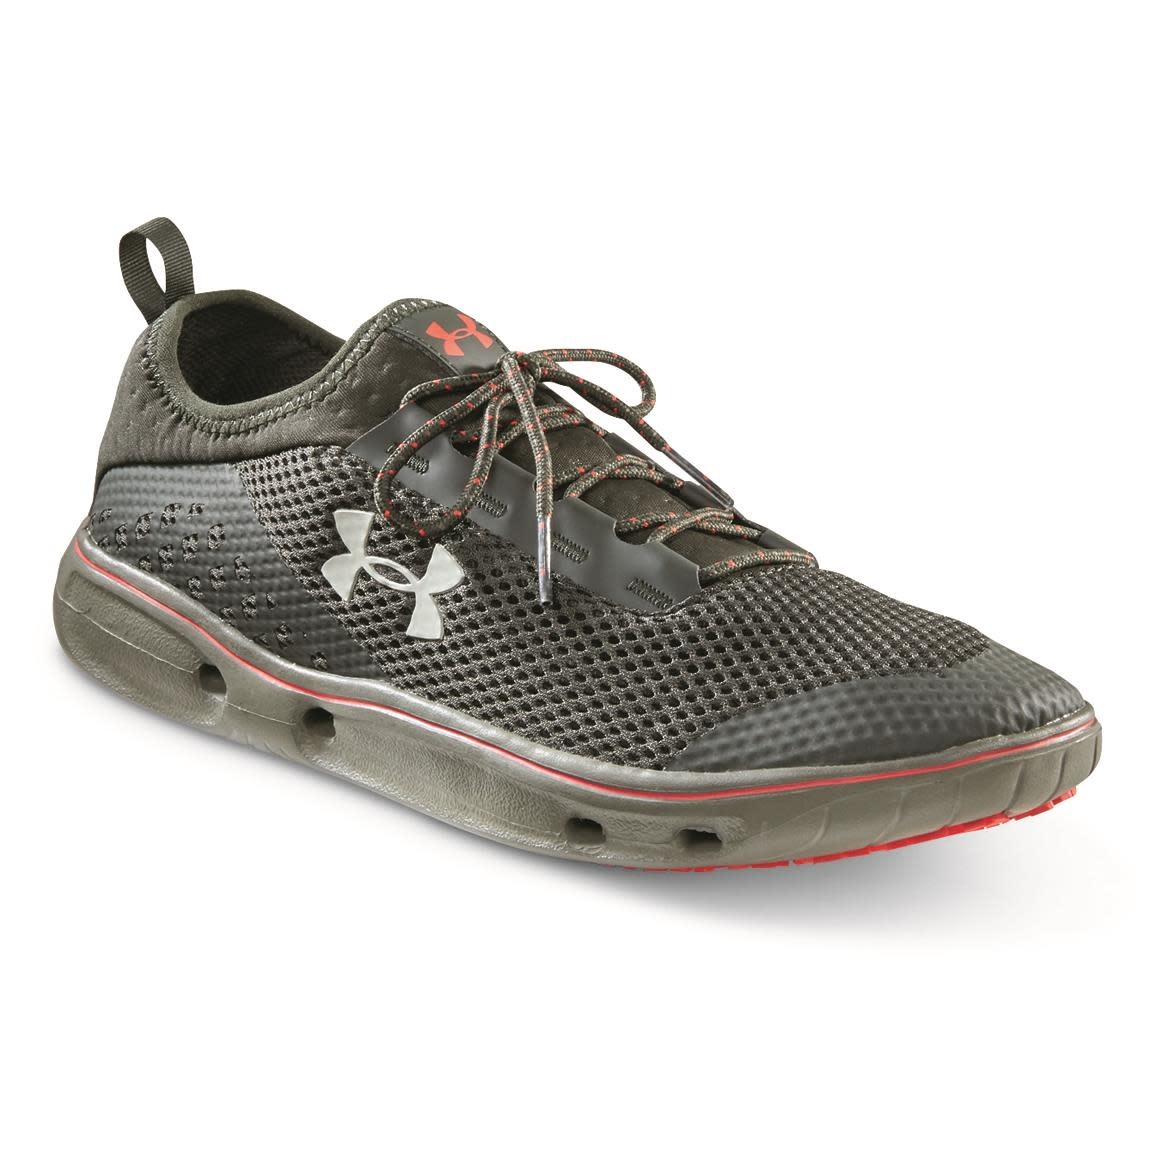 Under Armour UA Mens Kilchis